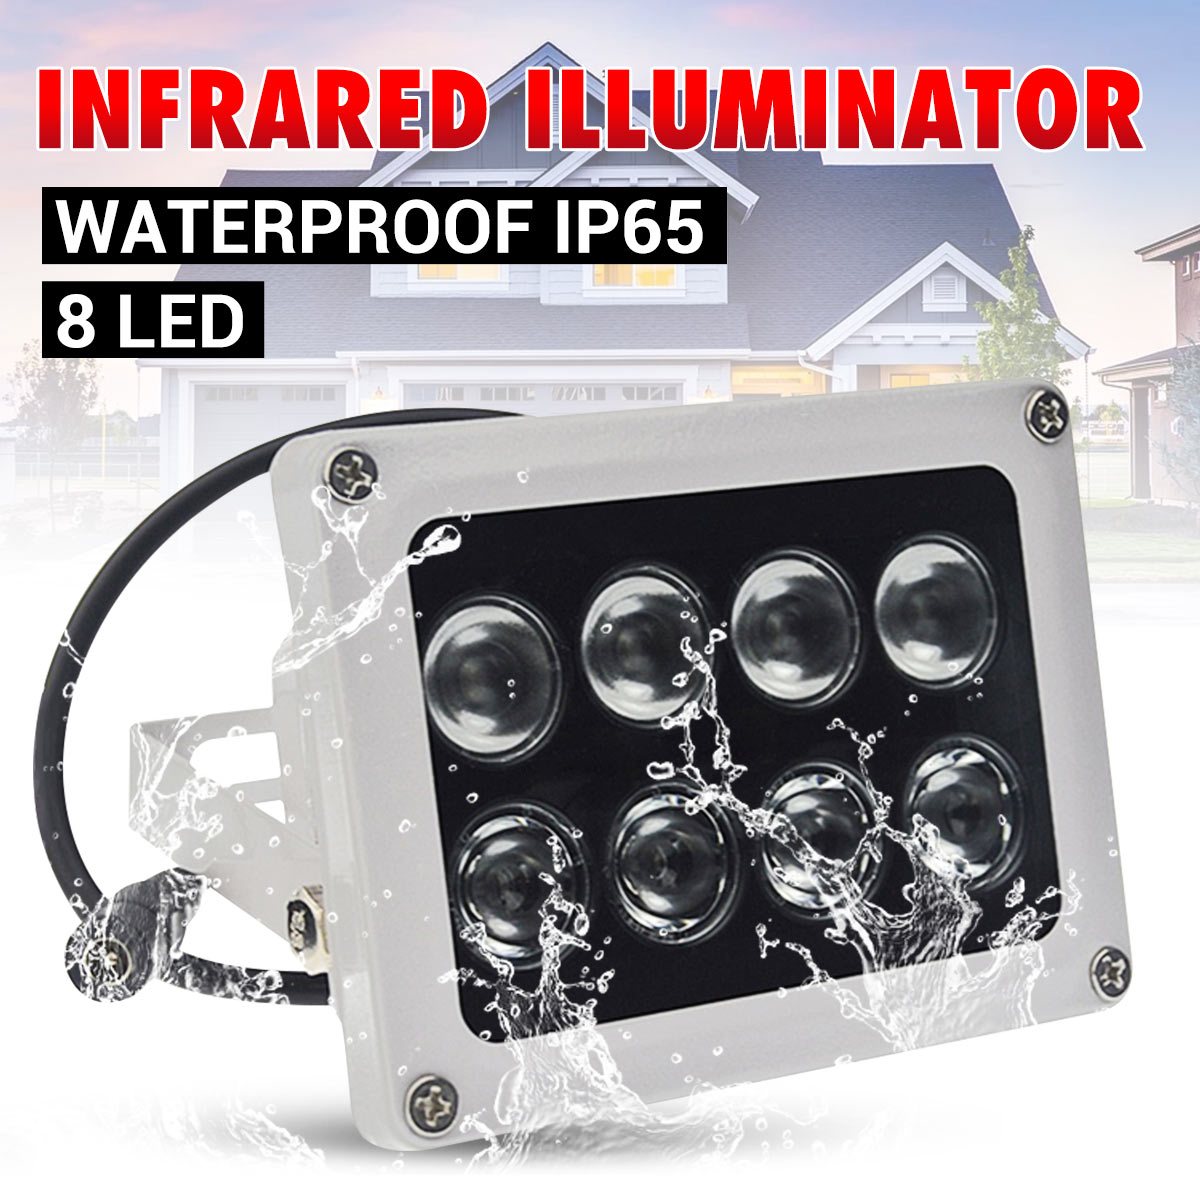 12V Infrared Light Lamp 8 LEDs IR Night Vision Wide Angle IP65 Waterproof Fill Light For CCTV Securiy Accessories